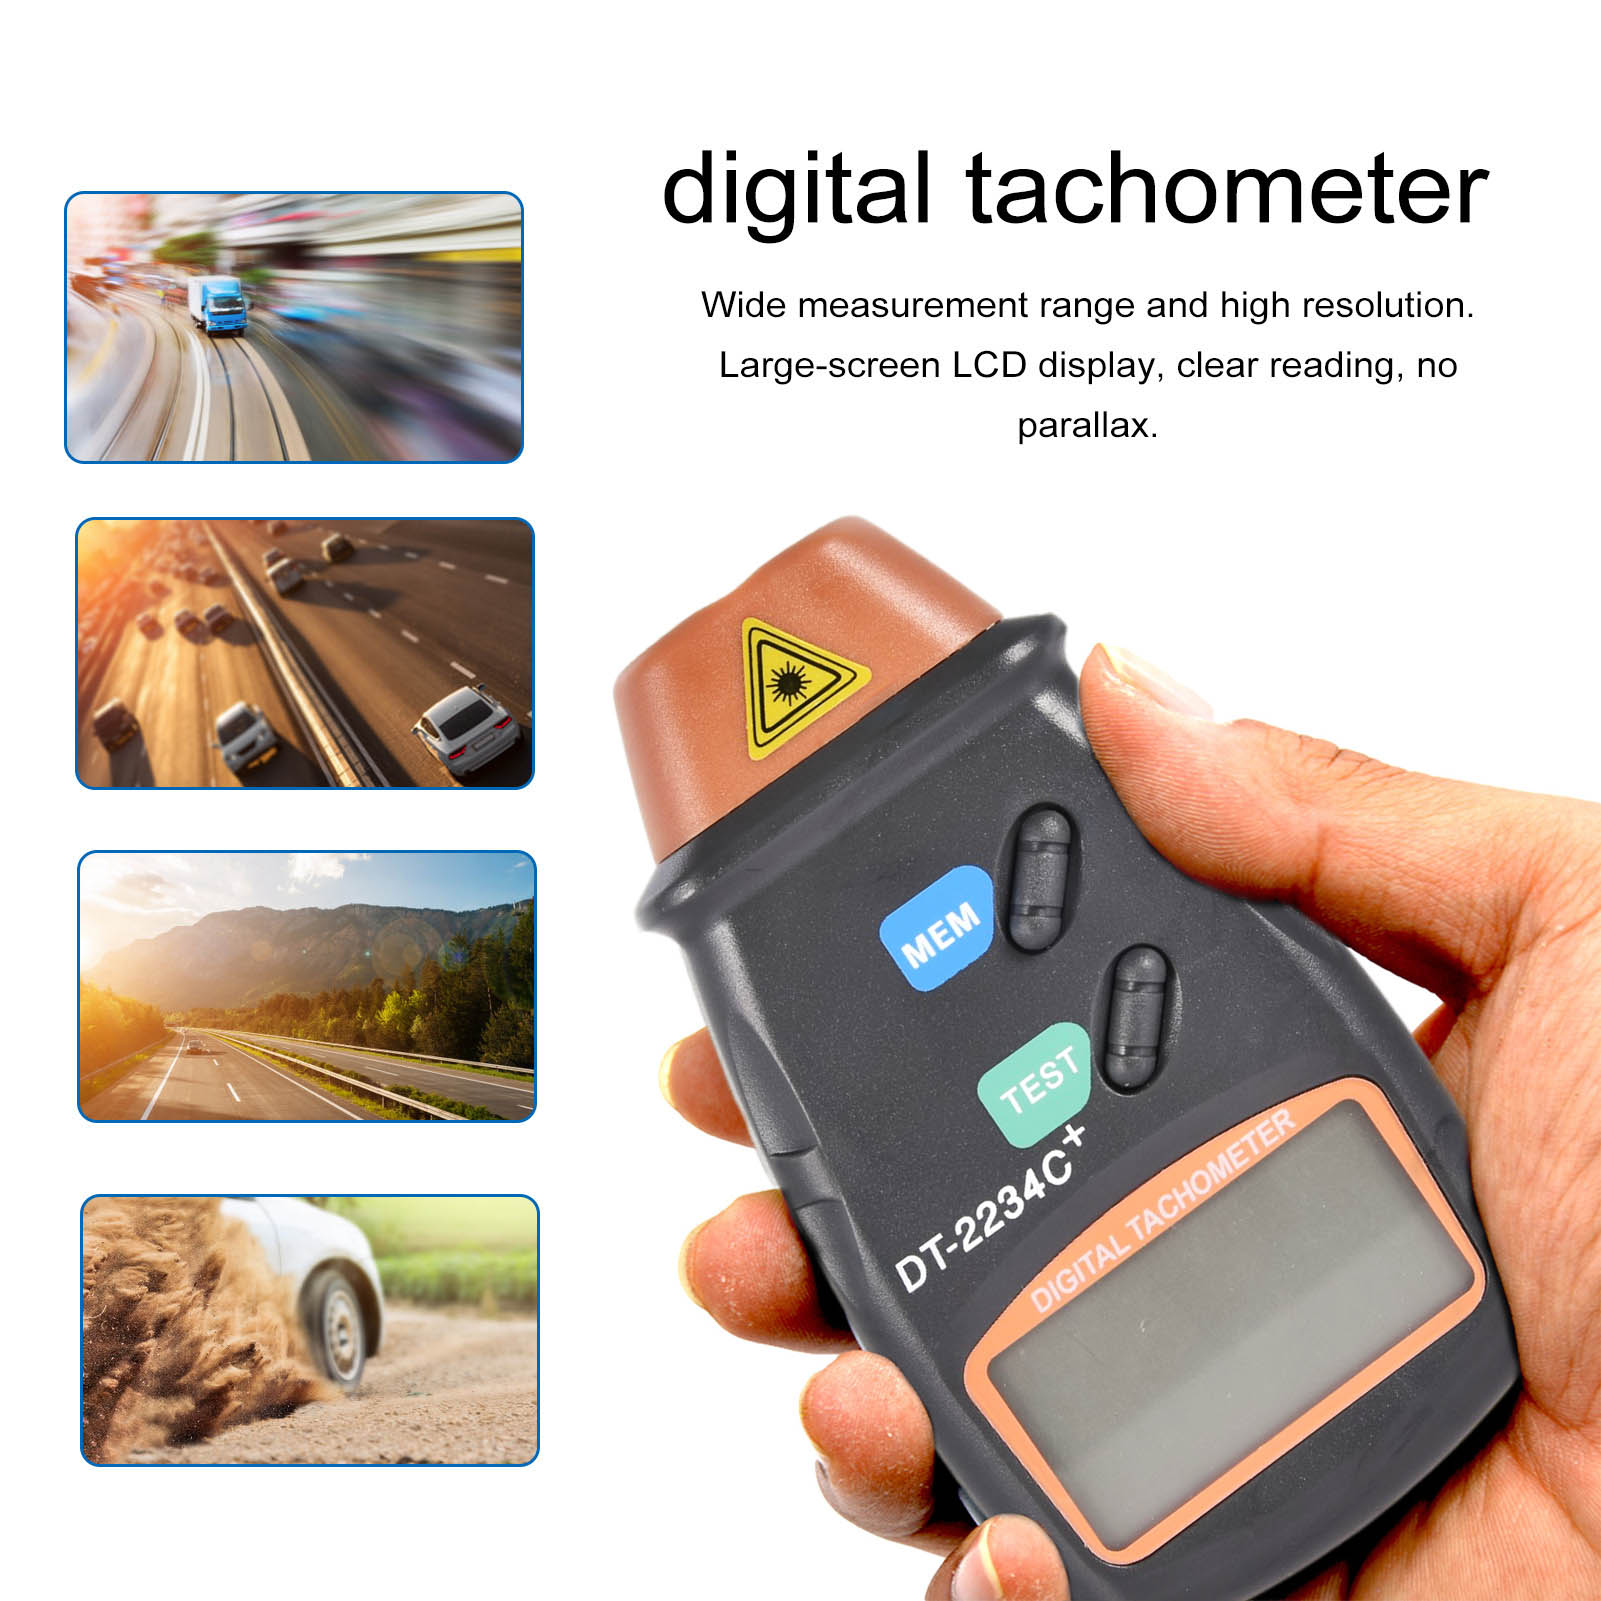 Digital Laser Counter Meter Non-contact Tachometer Rev RPM Counter For Testing Engine Rotation Speed Gauge Tools durable dt2234c digital laser counter meter non contact tachometer rev rpm counter for testing engine rotation speed gauge tools